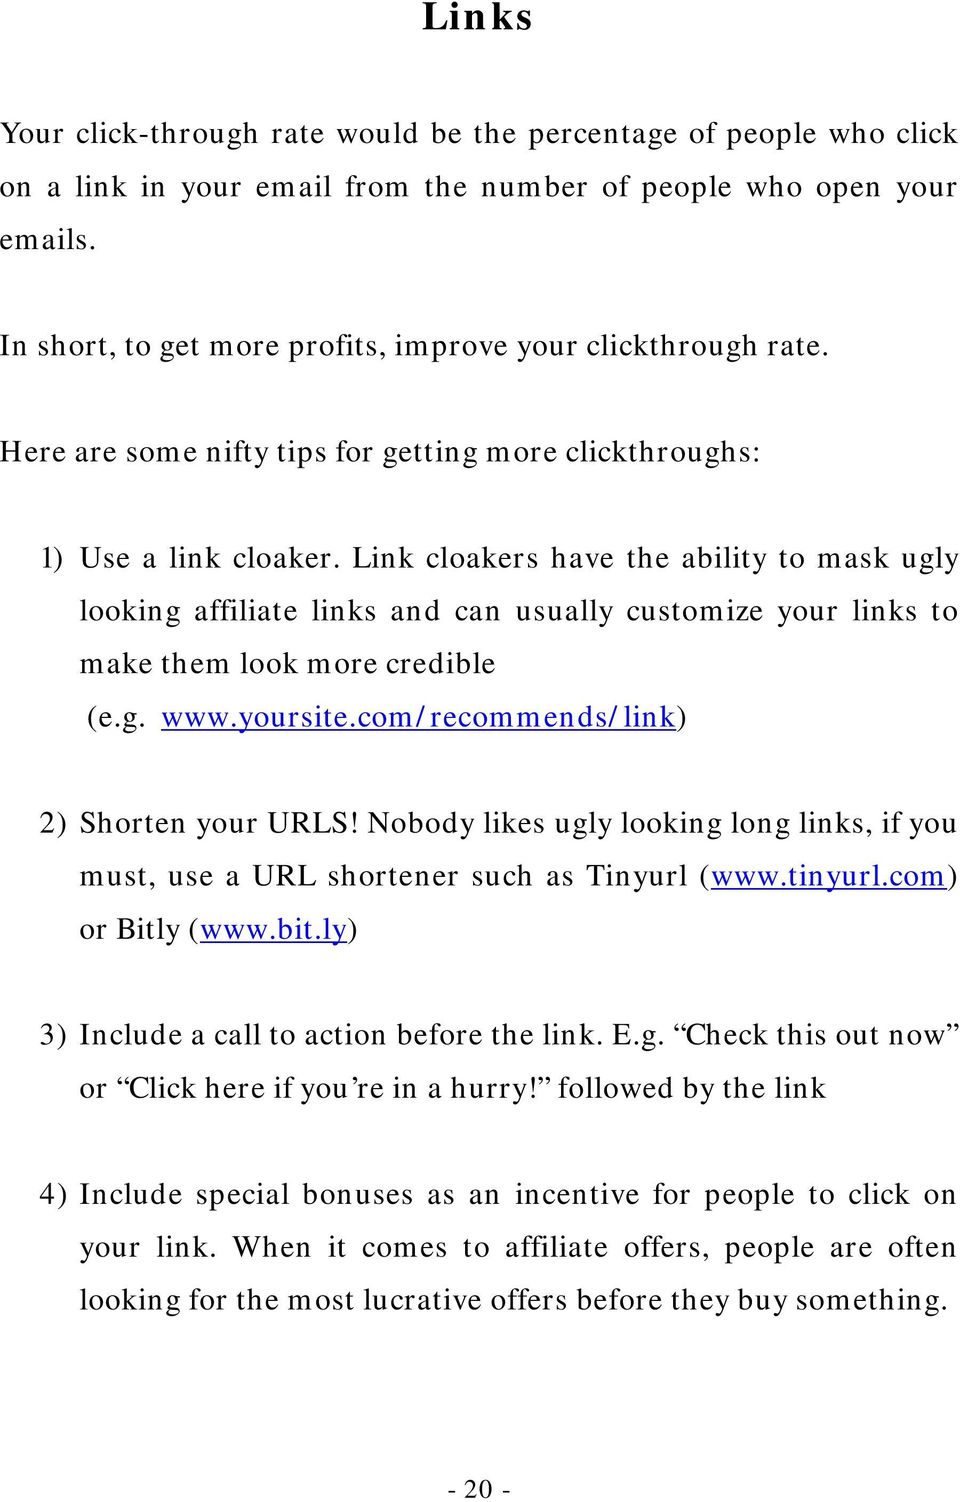 Link cloakers have the ability to mask ugly looking affiliate links and can usually customize your links to make them look more credible (e.g. www.yoursite.com/recommends/link) 2) Shorten your URLS!